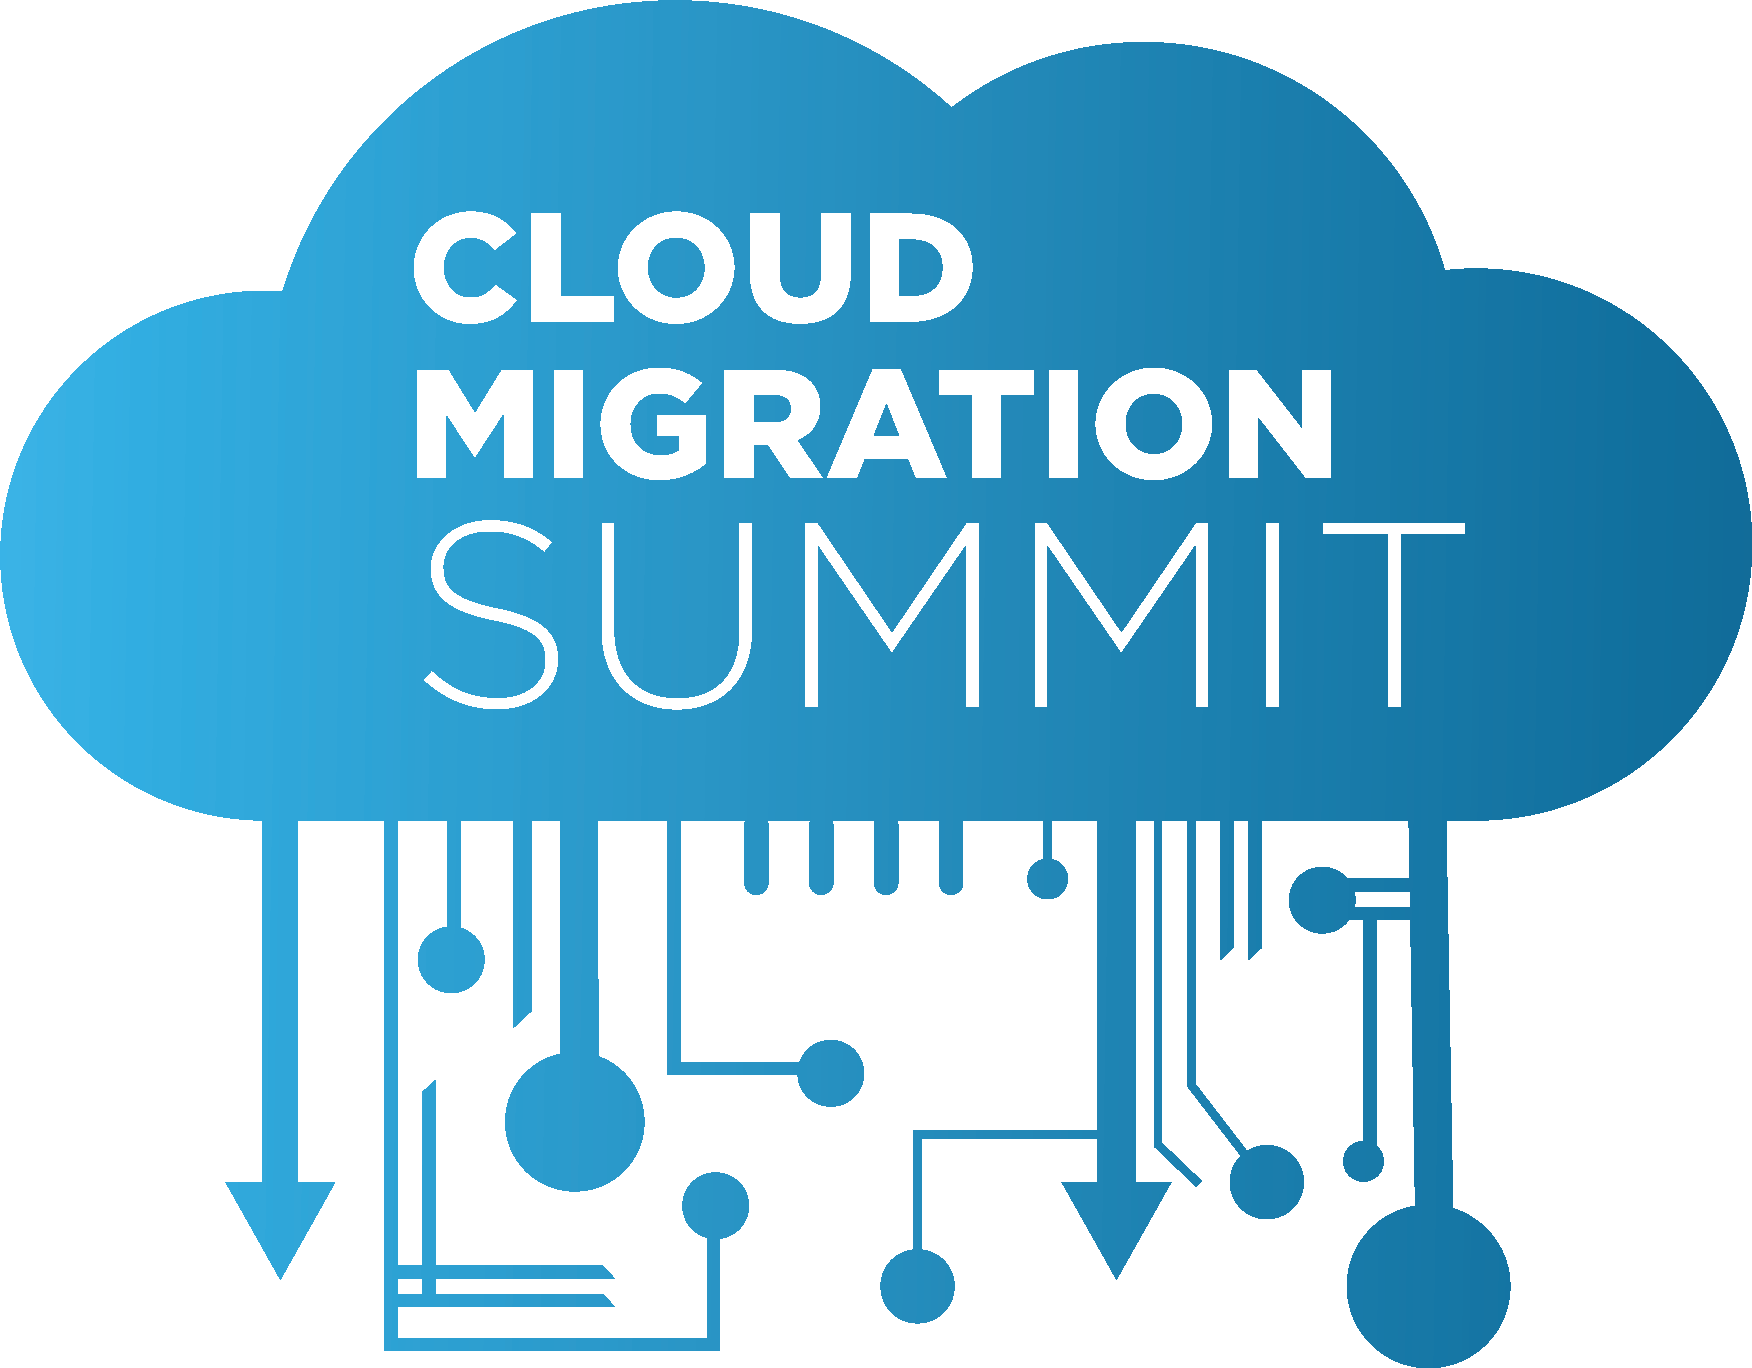 Cloud Migration Summit Logo